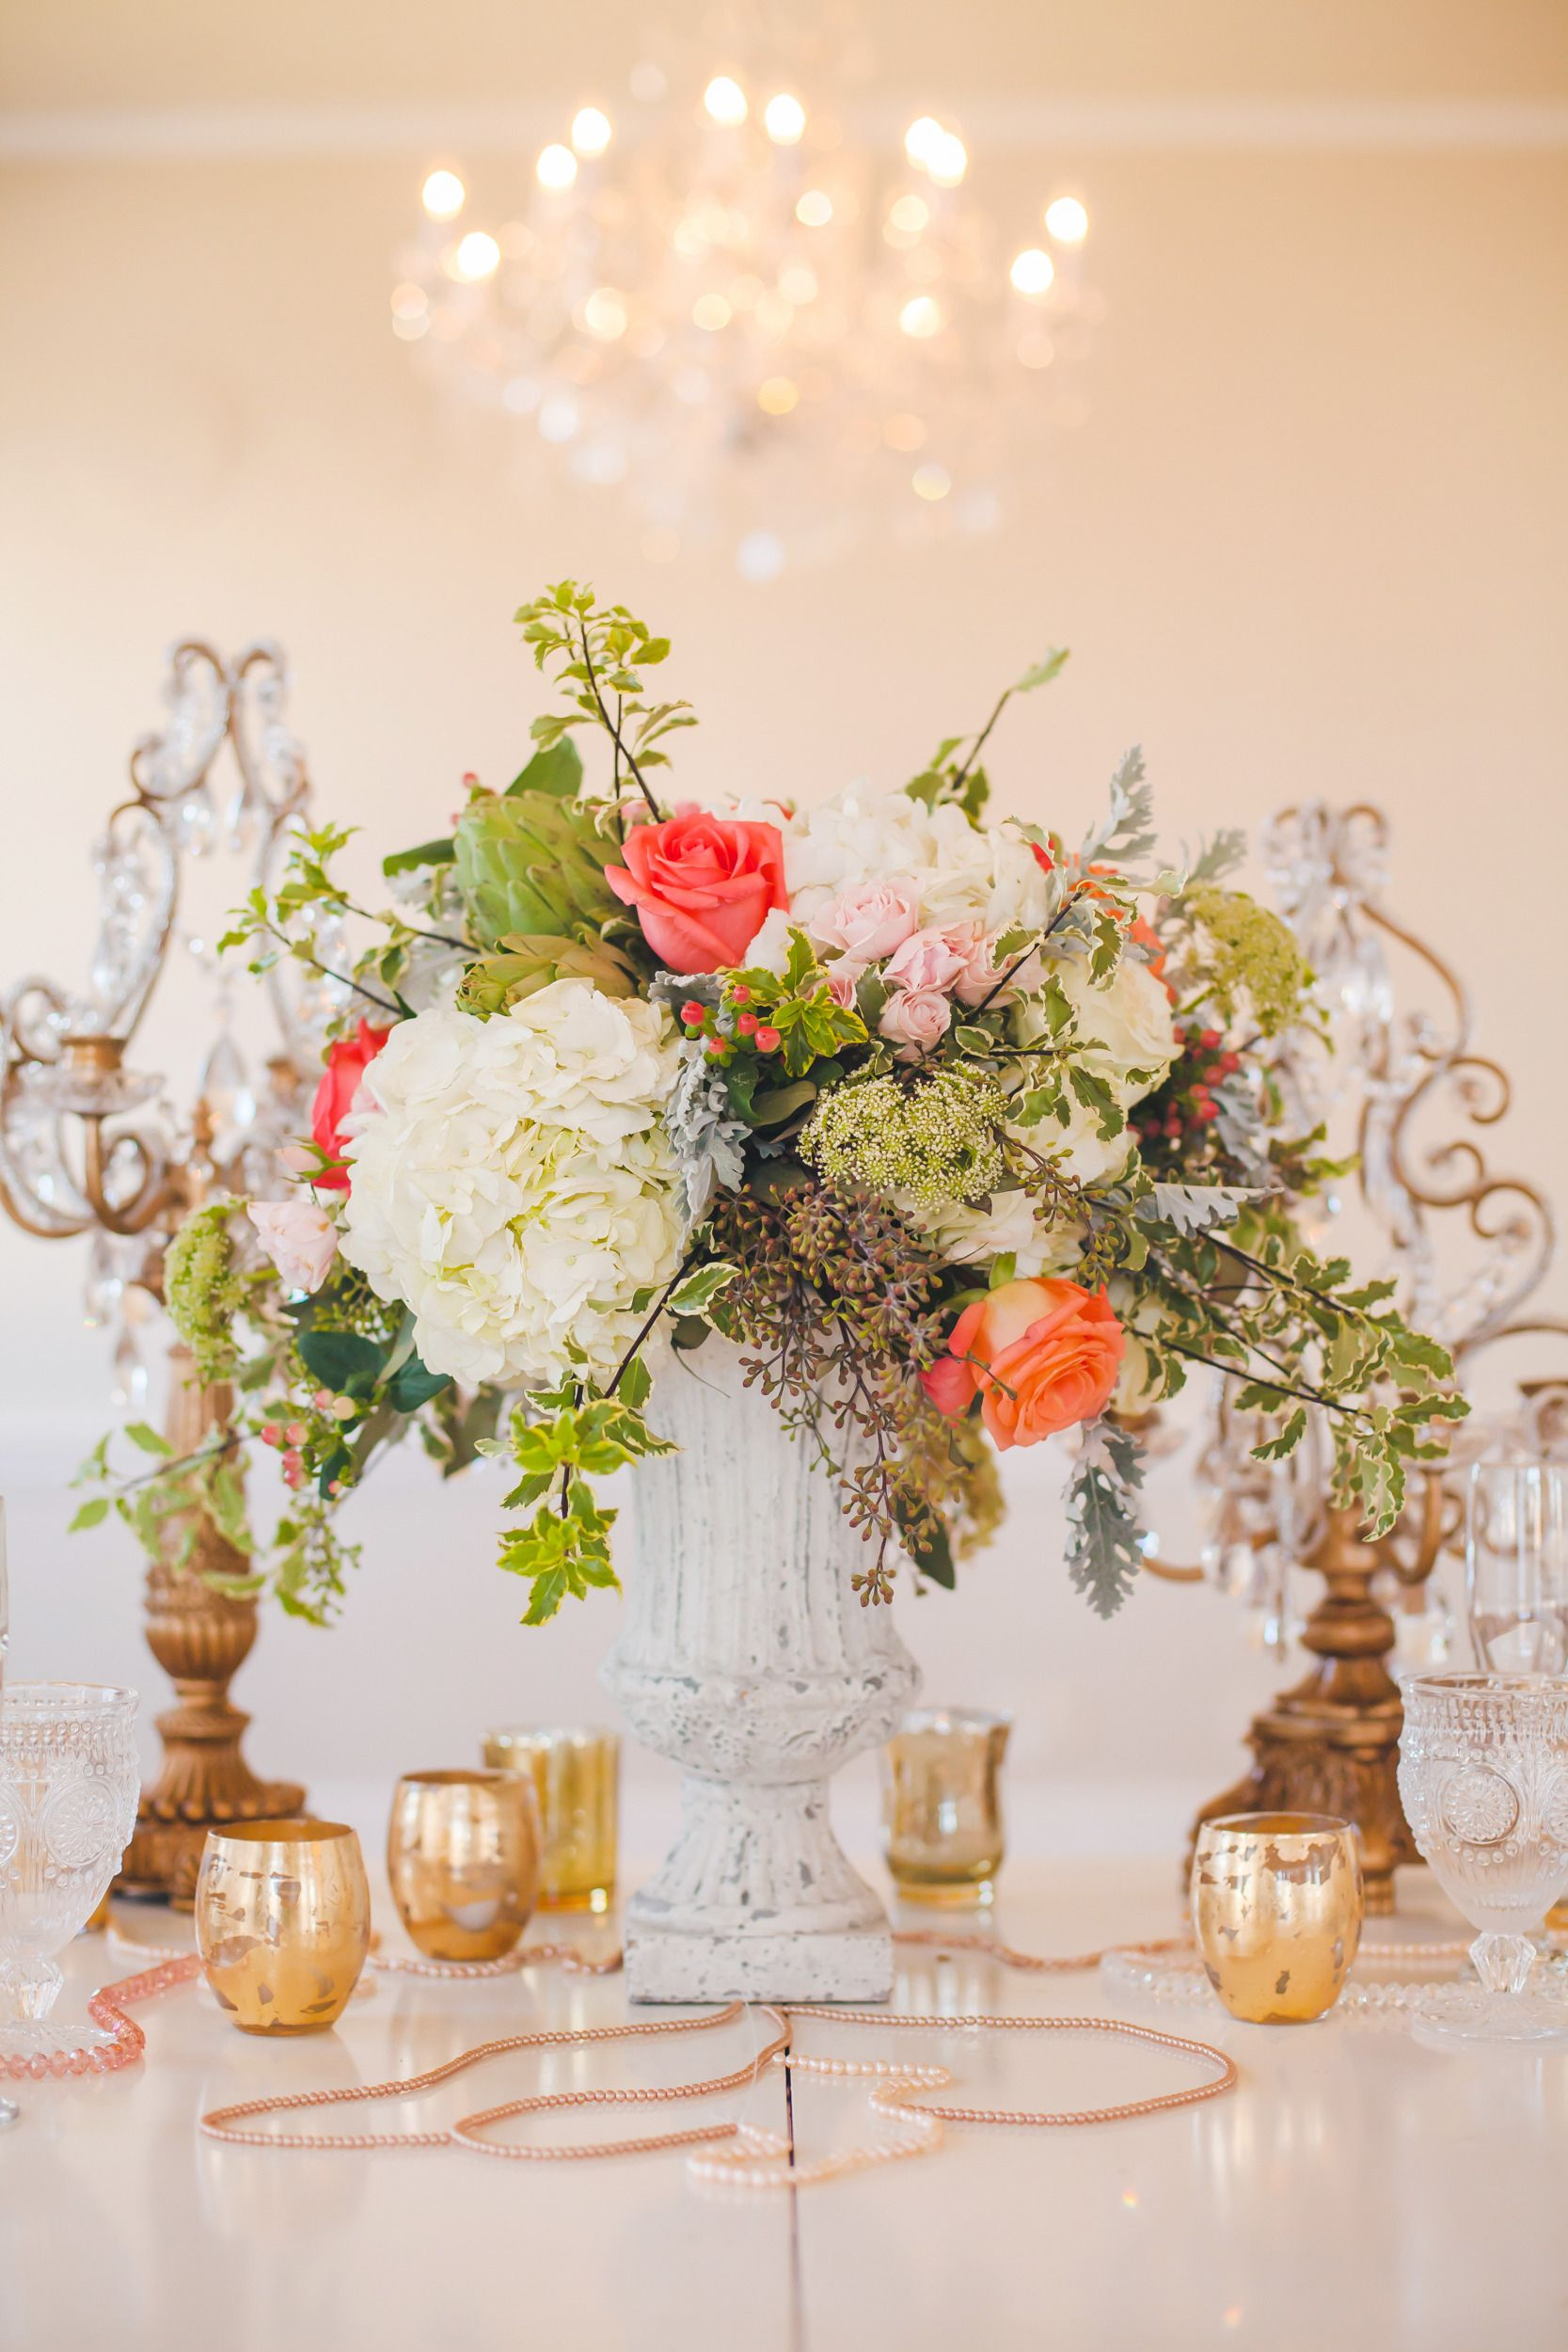 #centerpiece  Photography: Casey Hendrickson Photography - www.caseyhphotos.com  Read More: http://www.stylemepretty.com/2014/05/13/romantic-wedding-inspiration-separk-mansion/